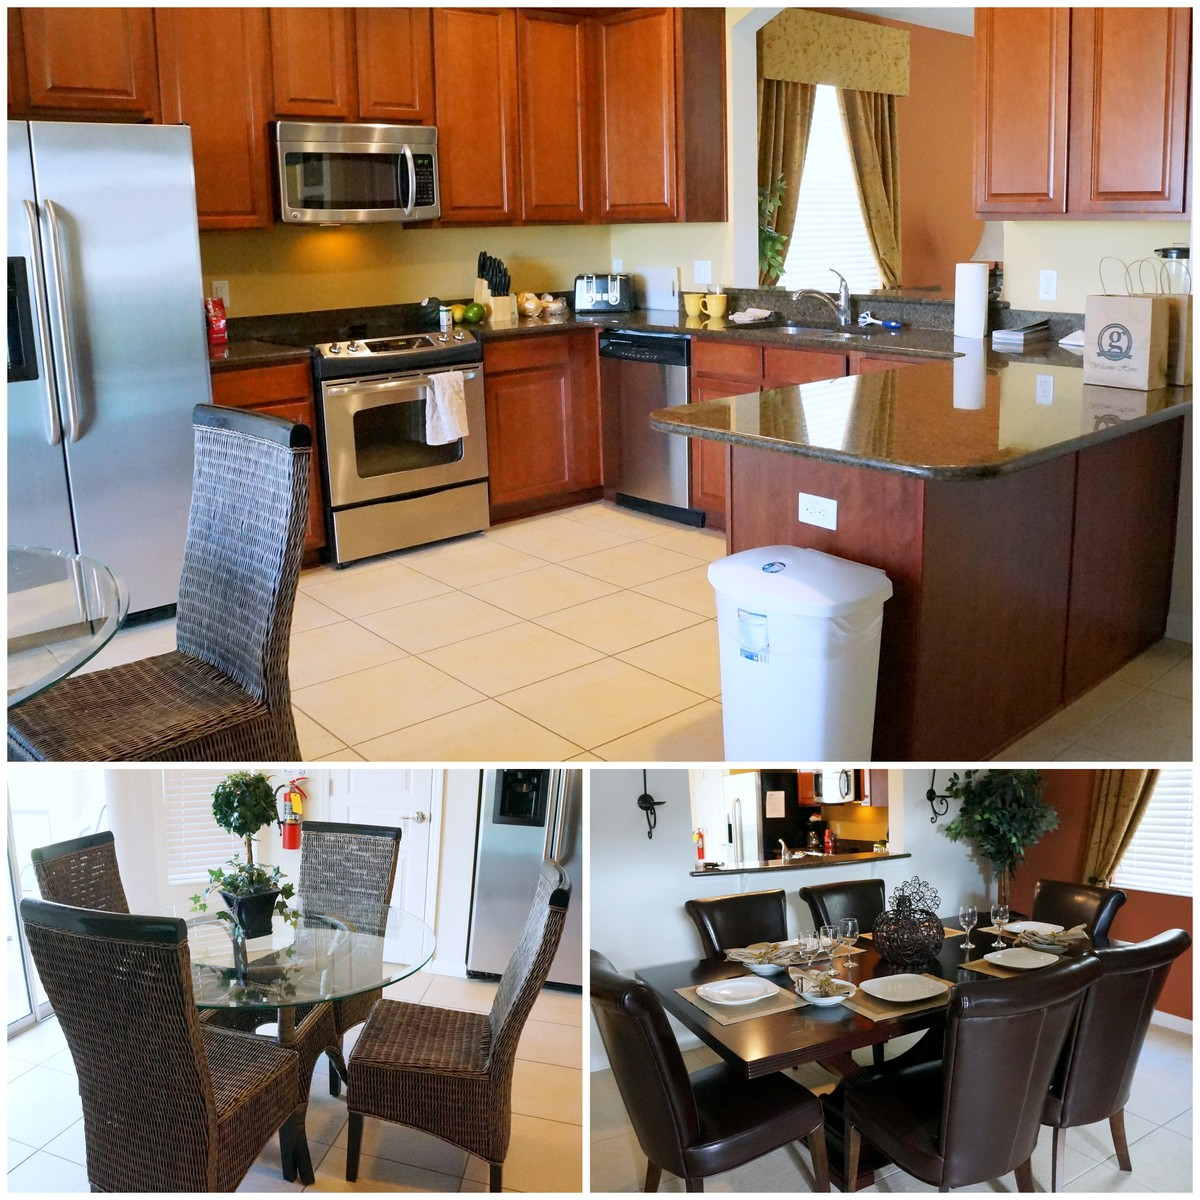 Studios For Rent Near Me: Orlando Vacation Home Rental Near Disney World